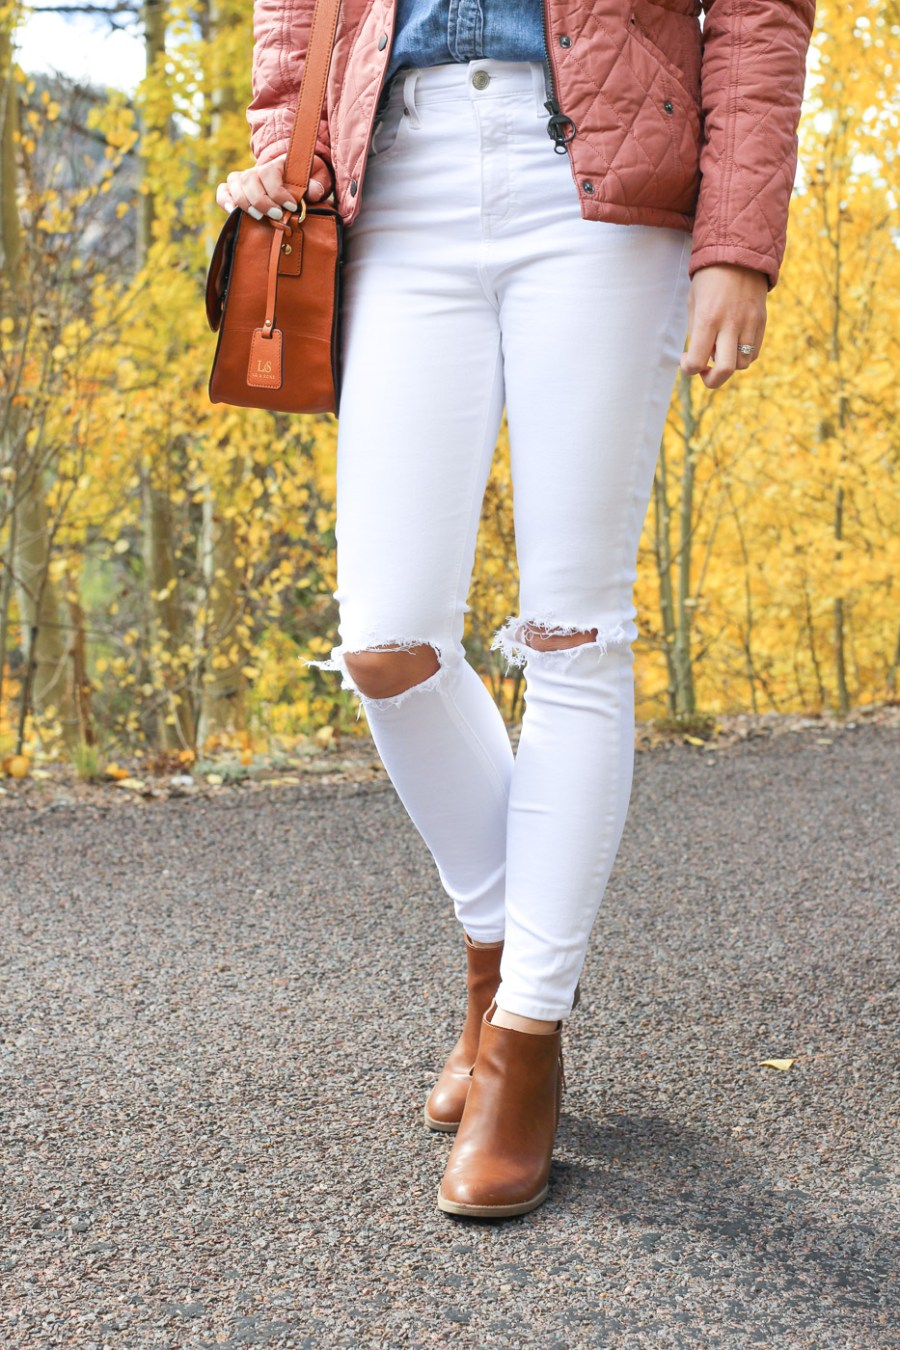 Pink Quilted Barbour Jacket, Treats and Trends Blog, Jamie Kamber, Women's Fashion, fall fashion, fall outfit idea, pinterest outfit idea, white jeans, Target booties, aspen trees